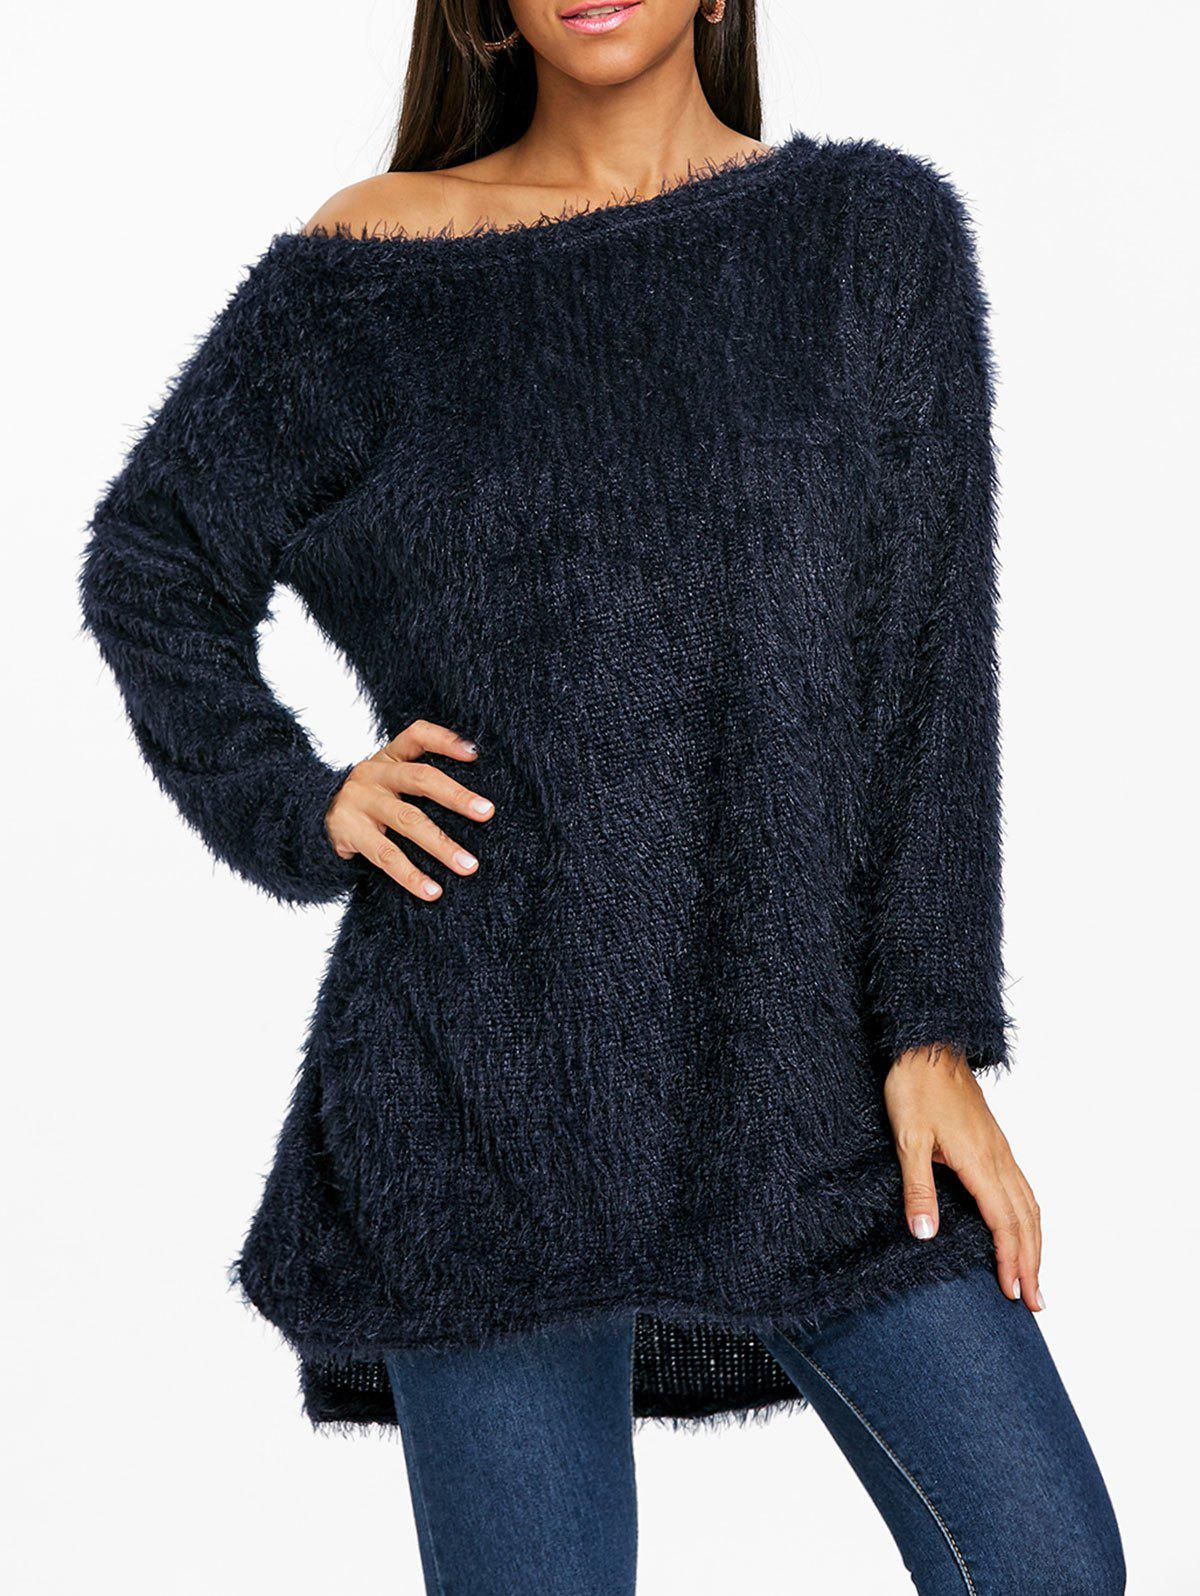 Fluffy Skew Neck Tunic Sweater - PURPLISH BLUE XL